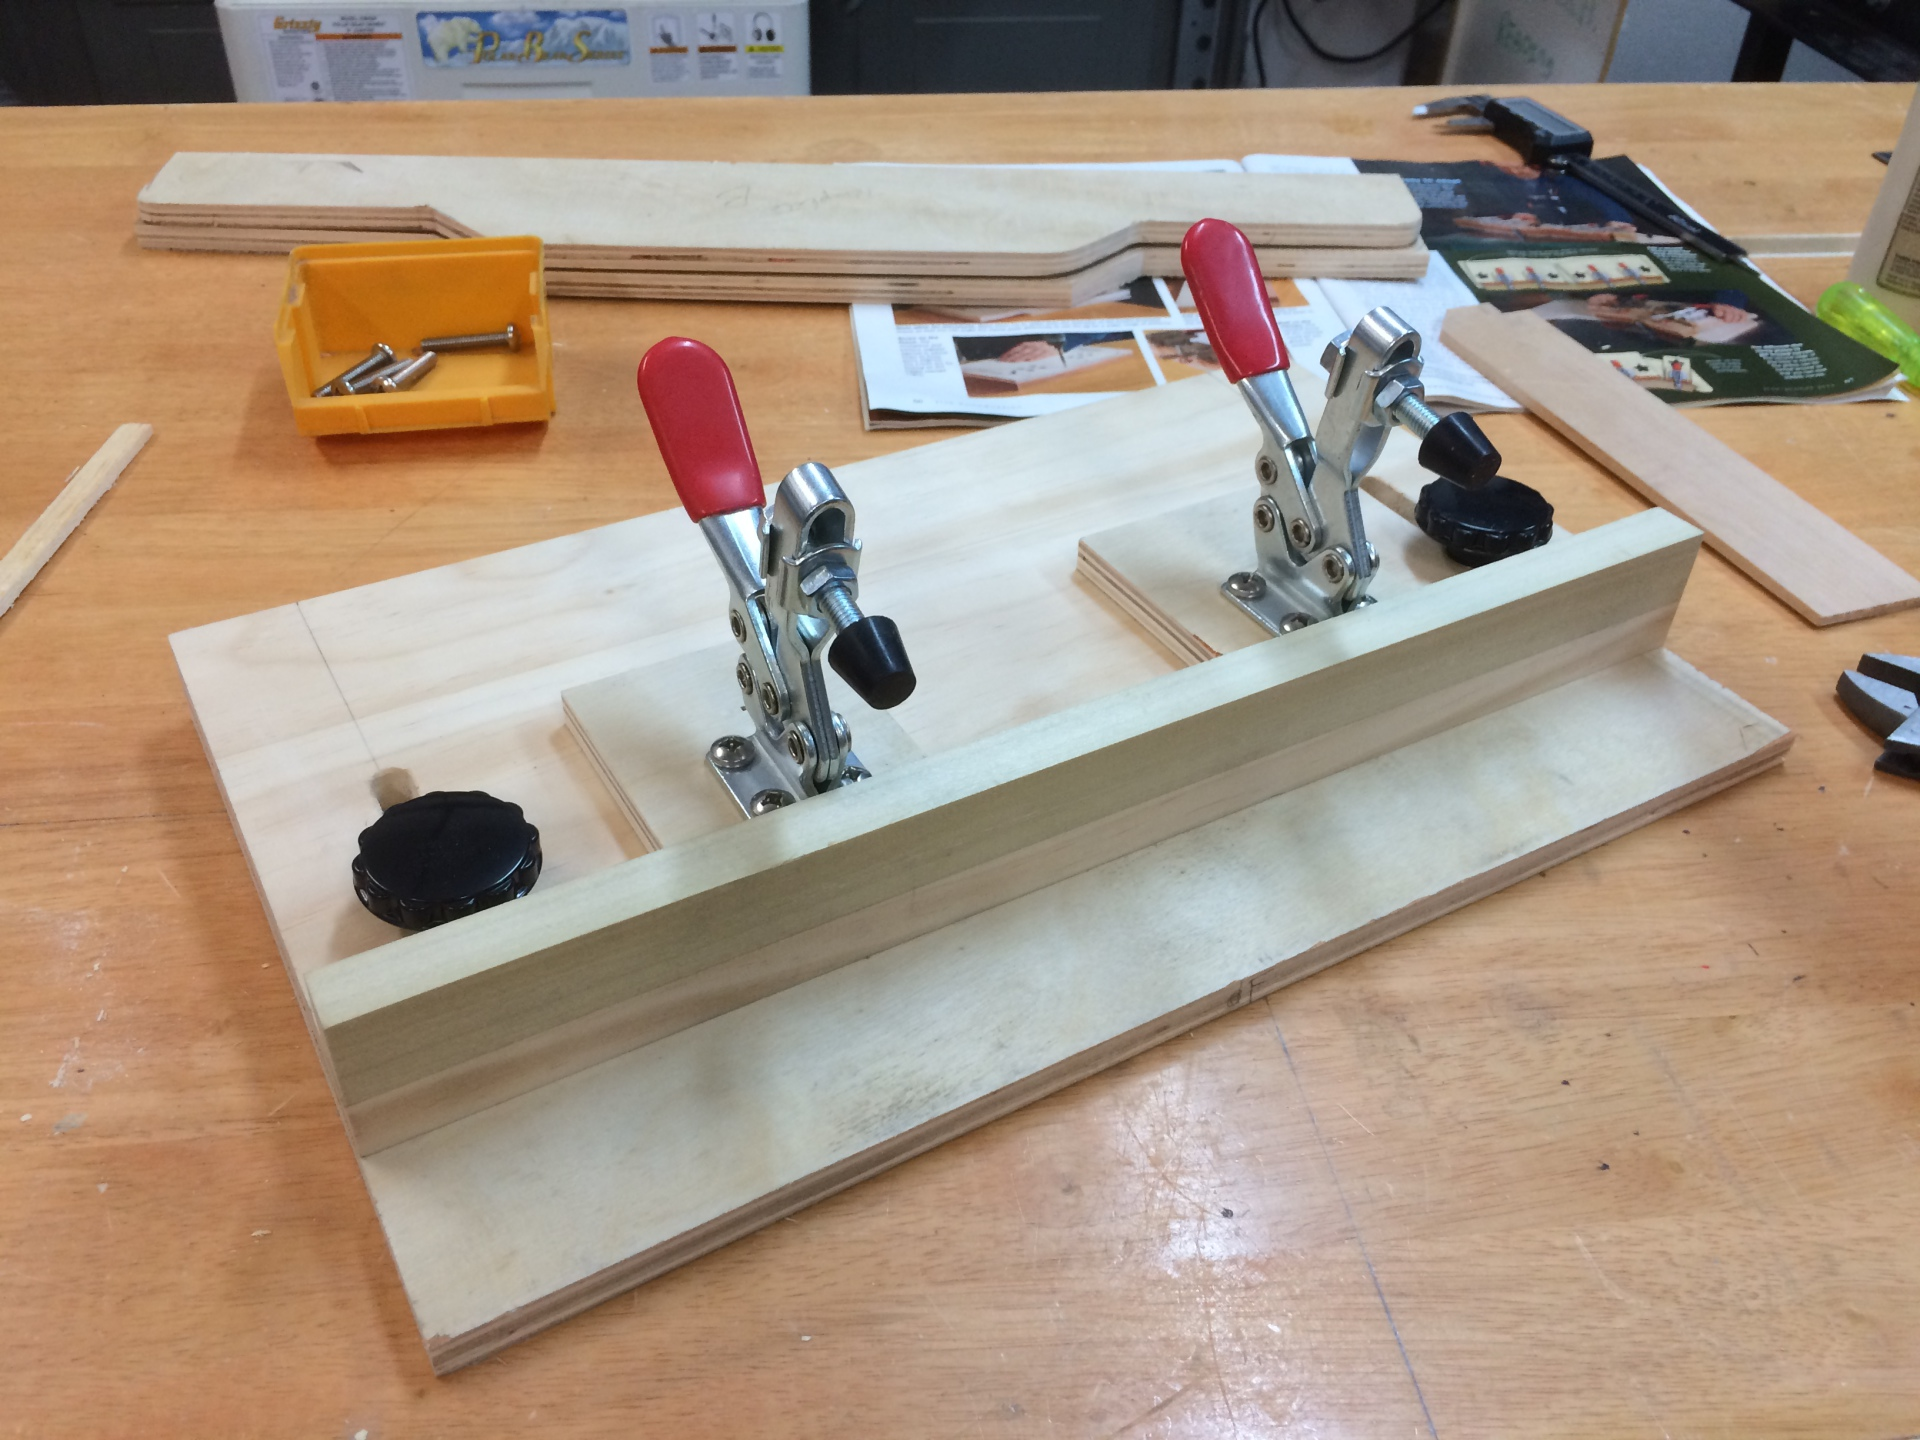 Routing jig